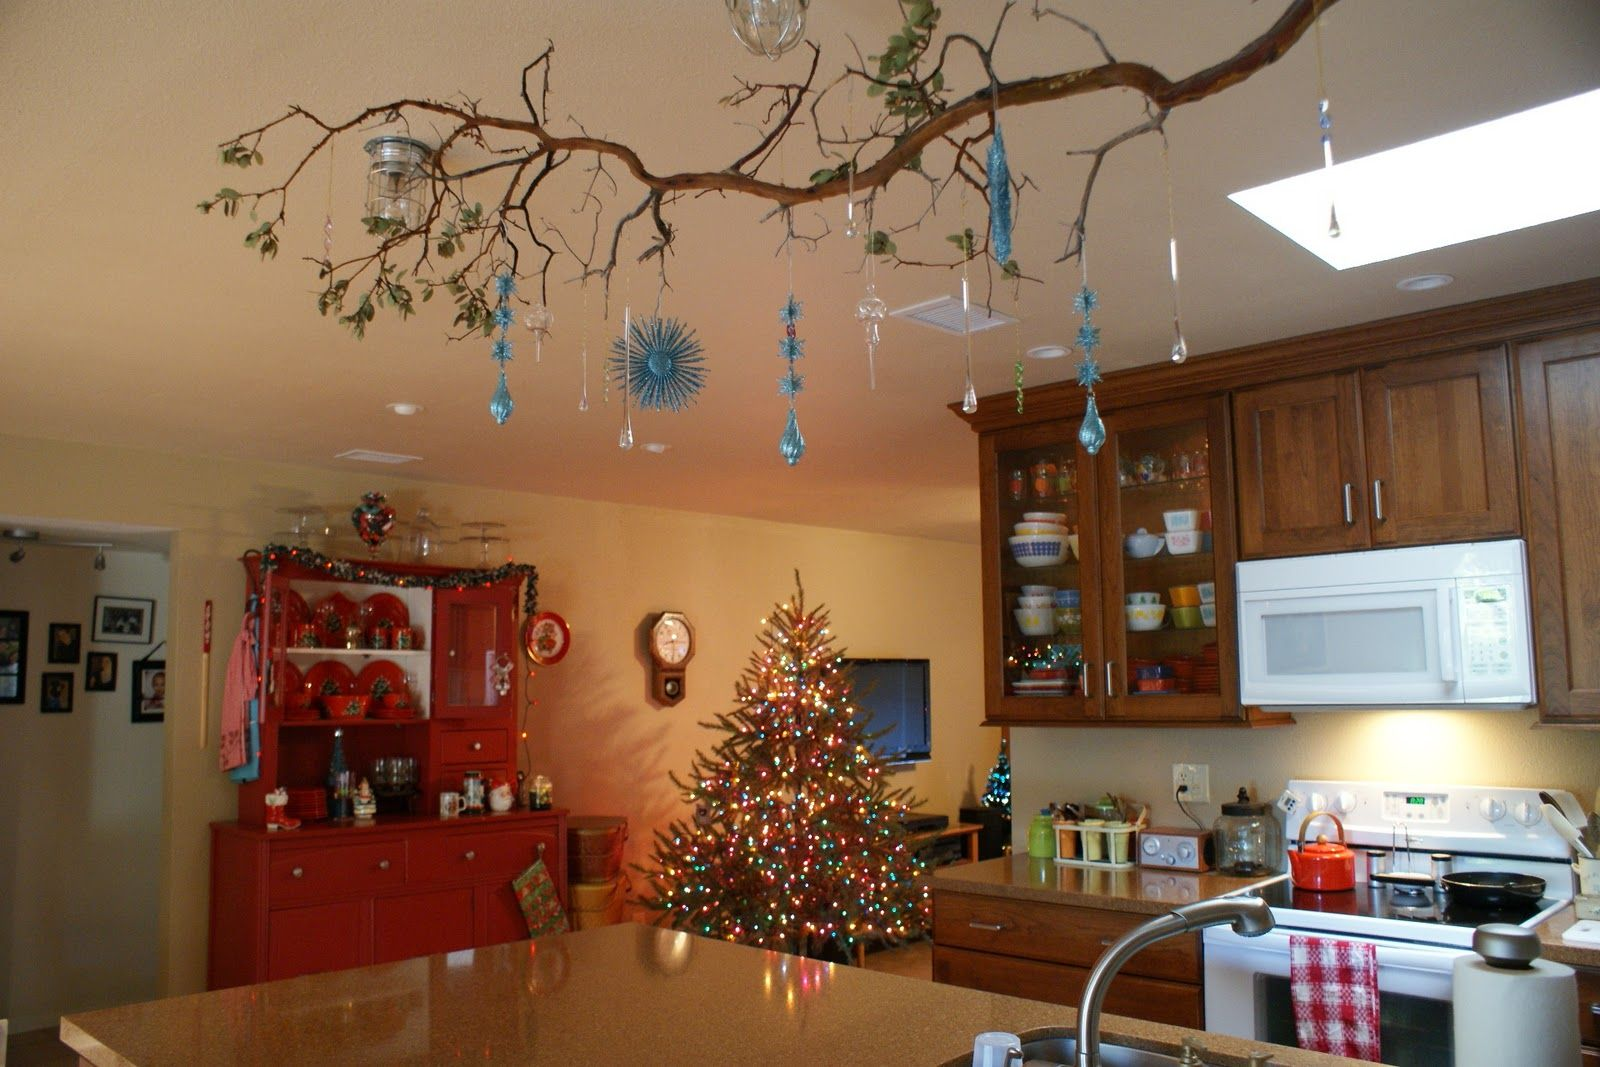 Hang Branches From The Ceiling With Fishing Wire And Decorate With Whatever You Choose Description From Pint Tree Branch Decor Christmas Branches Branch Decor